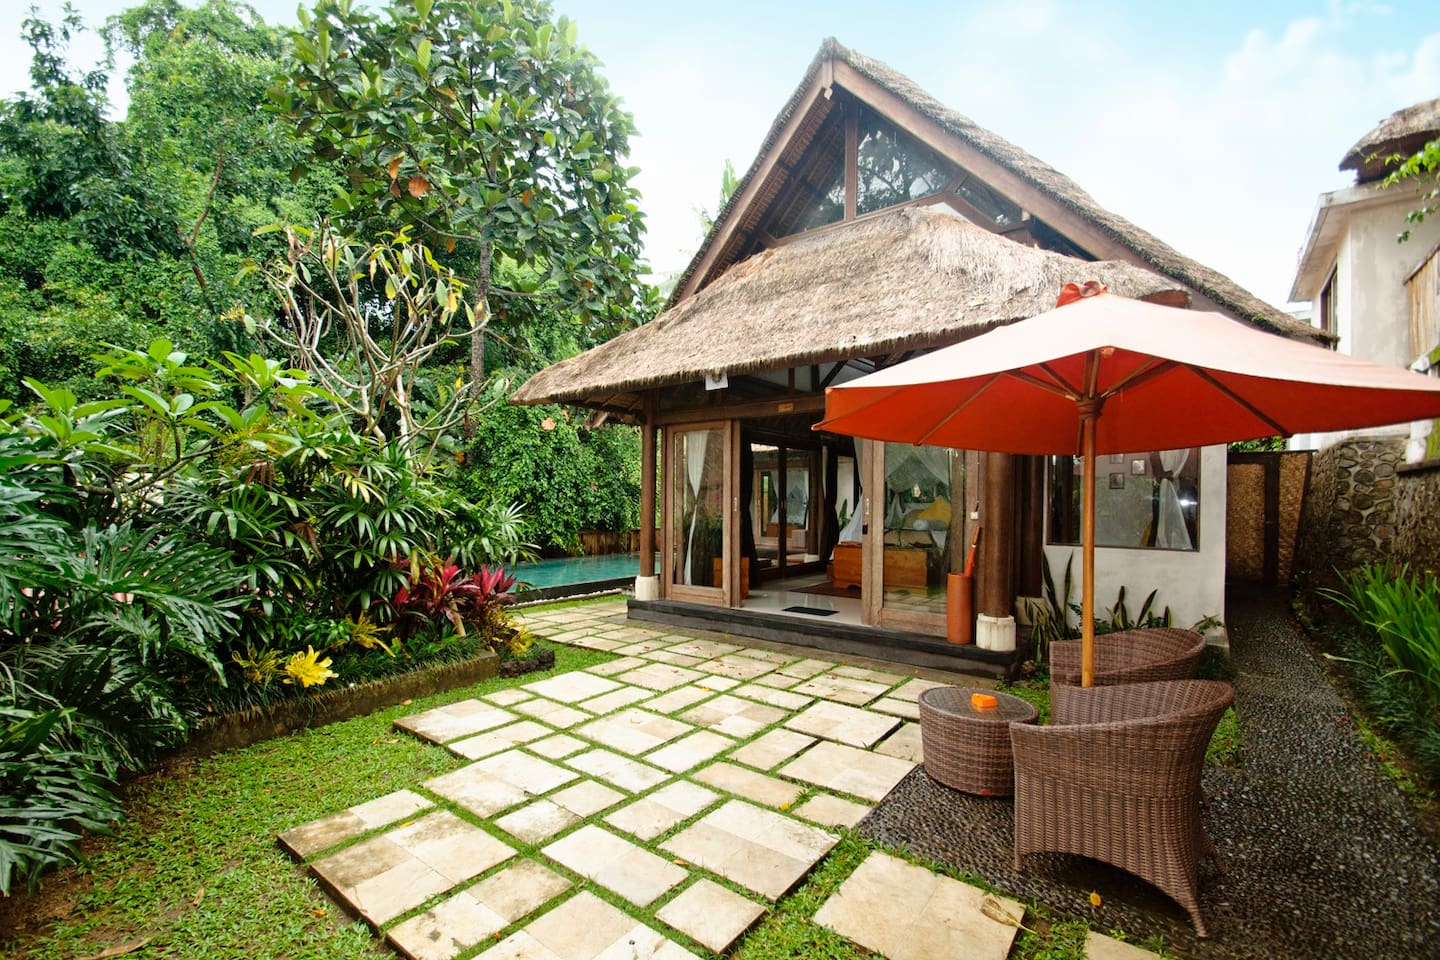 Villa Ananda Sri is a premium villa with a full bath, private patio and a pool shared with Villa Ananda. You can book it by itself or together with Villa Ananda